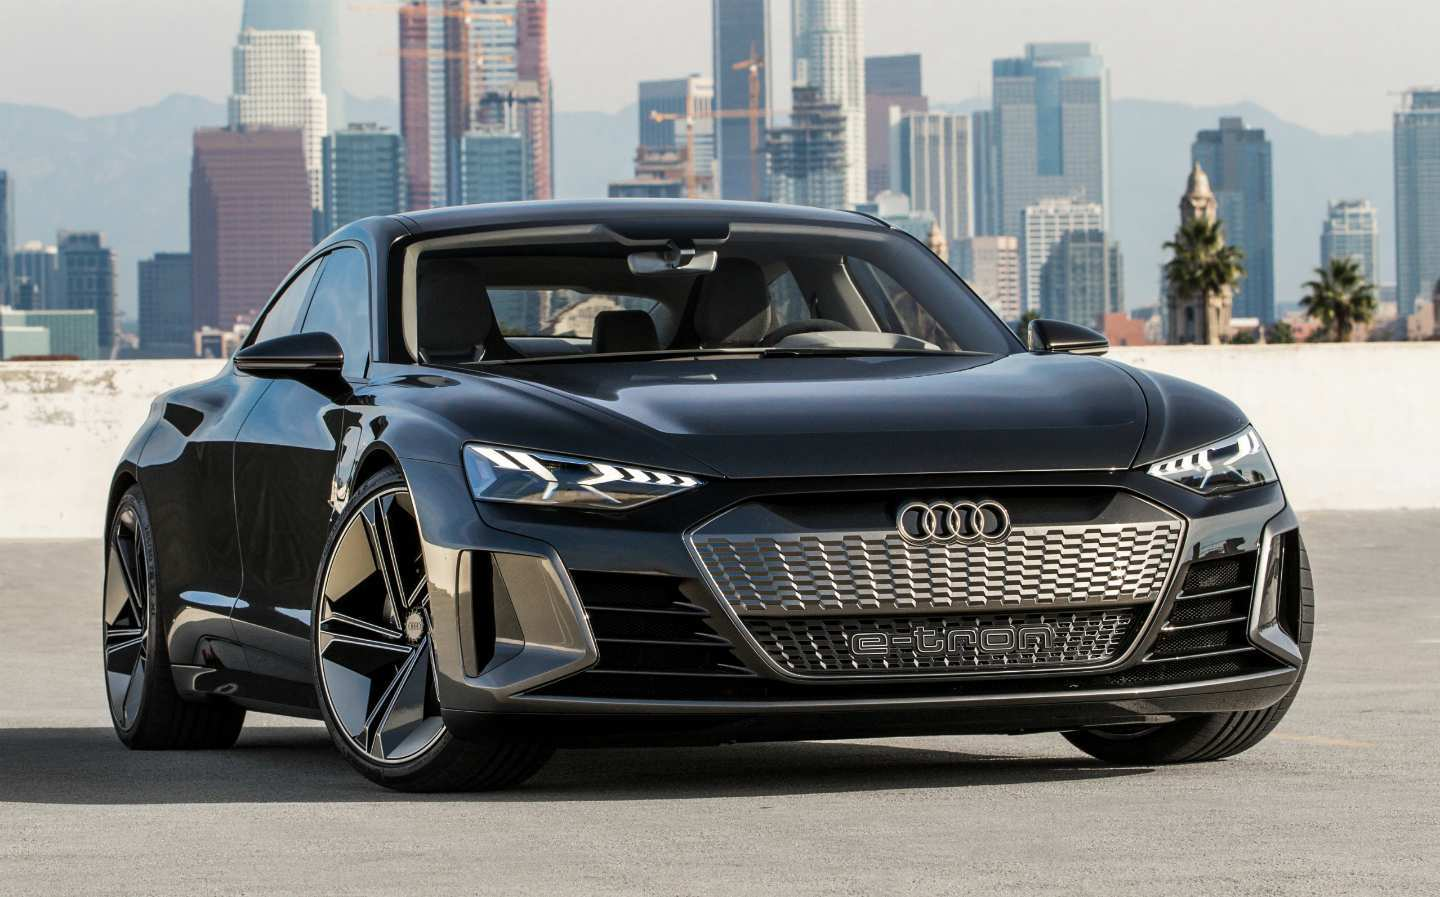 41 The Best Audi Hybrid Range 2020 Exterior